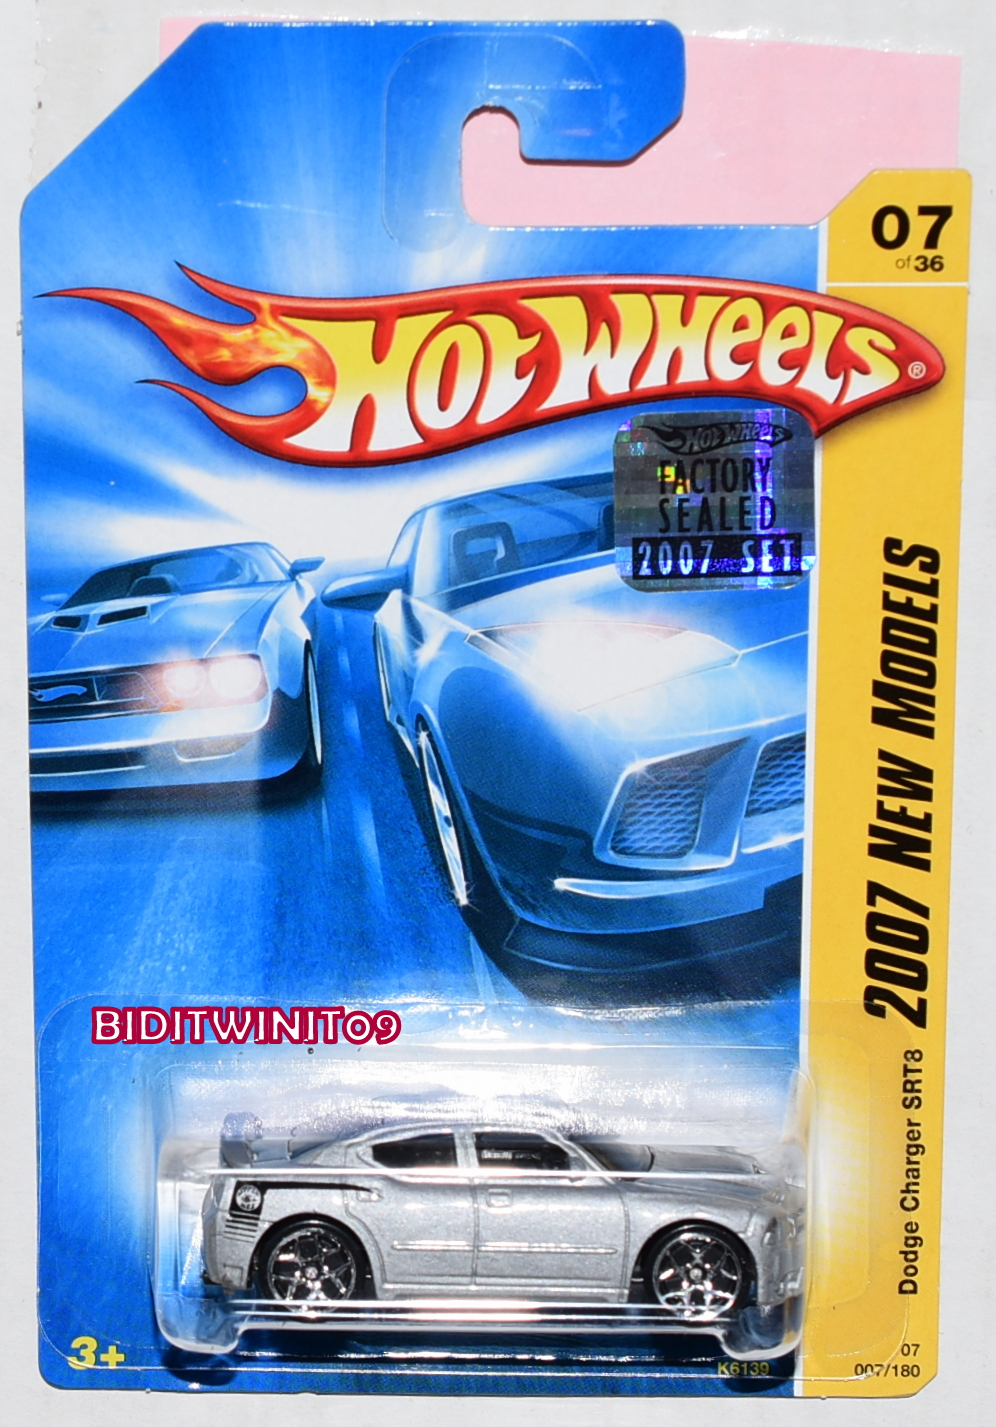 HOT WHEELS 2007 NEW MODELS DODGE CHARGER SRT8 #07/36 SILVER FACTORY SEALED